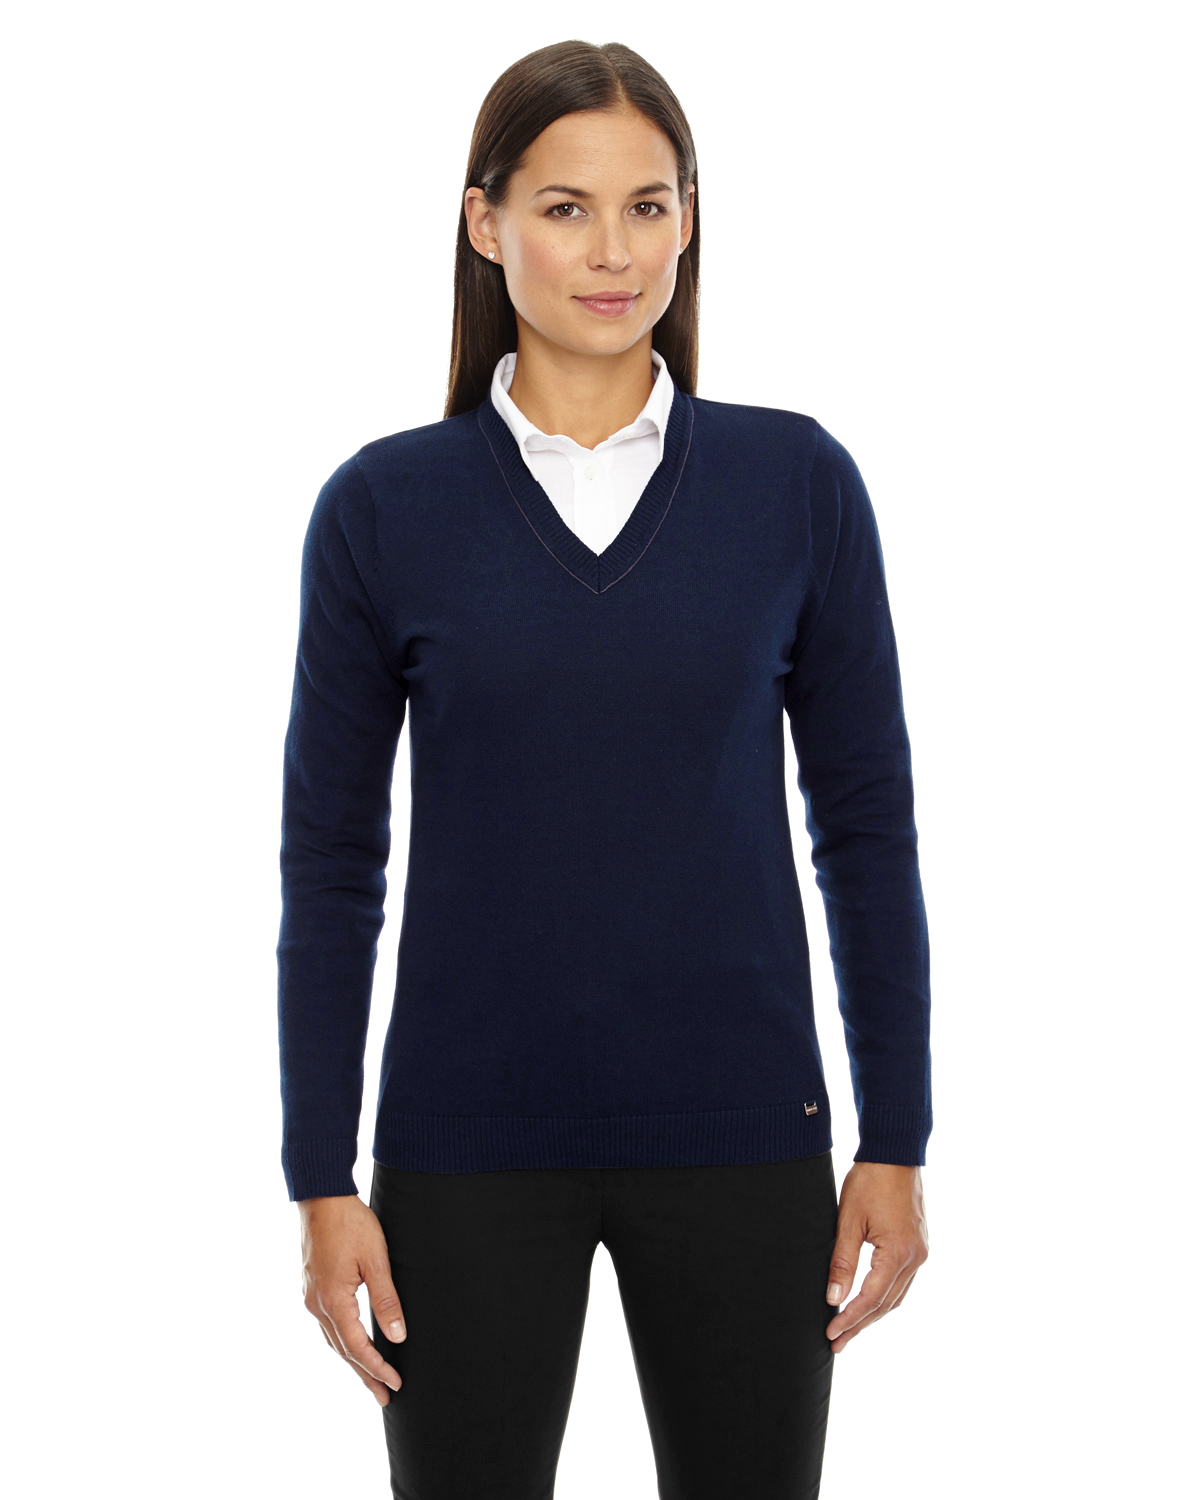 Ash City - 71010 Ladies' Merton Soft Touch V-Neck Sweater, Pensacola, Embroidery, Screen Printing, Logo Masters International